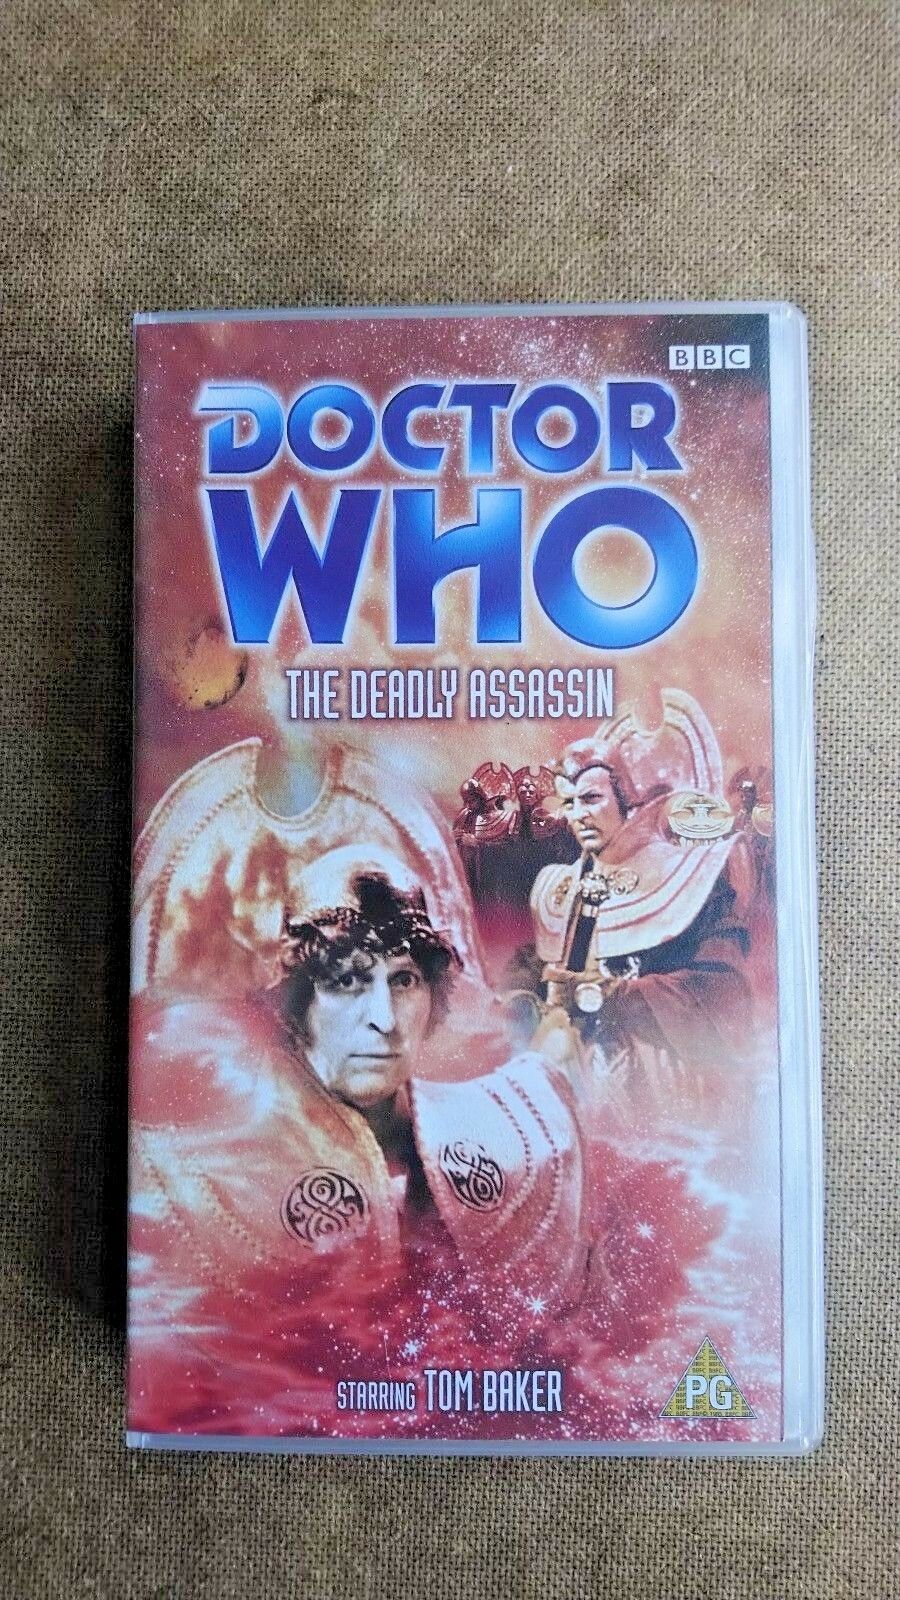 Doctor Who The Deadly Assassin - Tom Baker